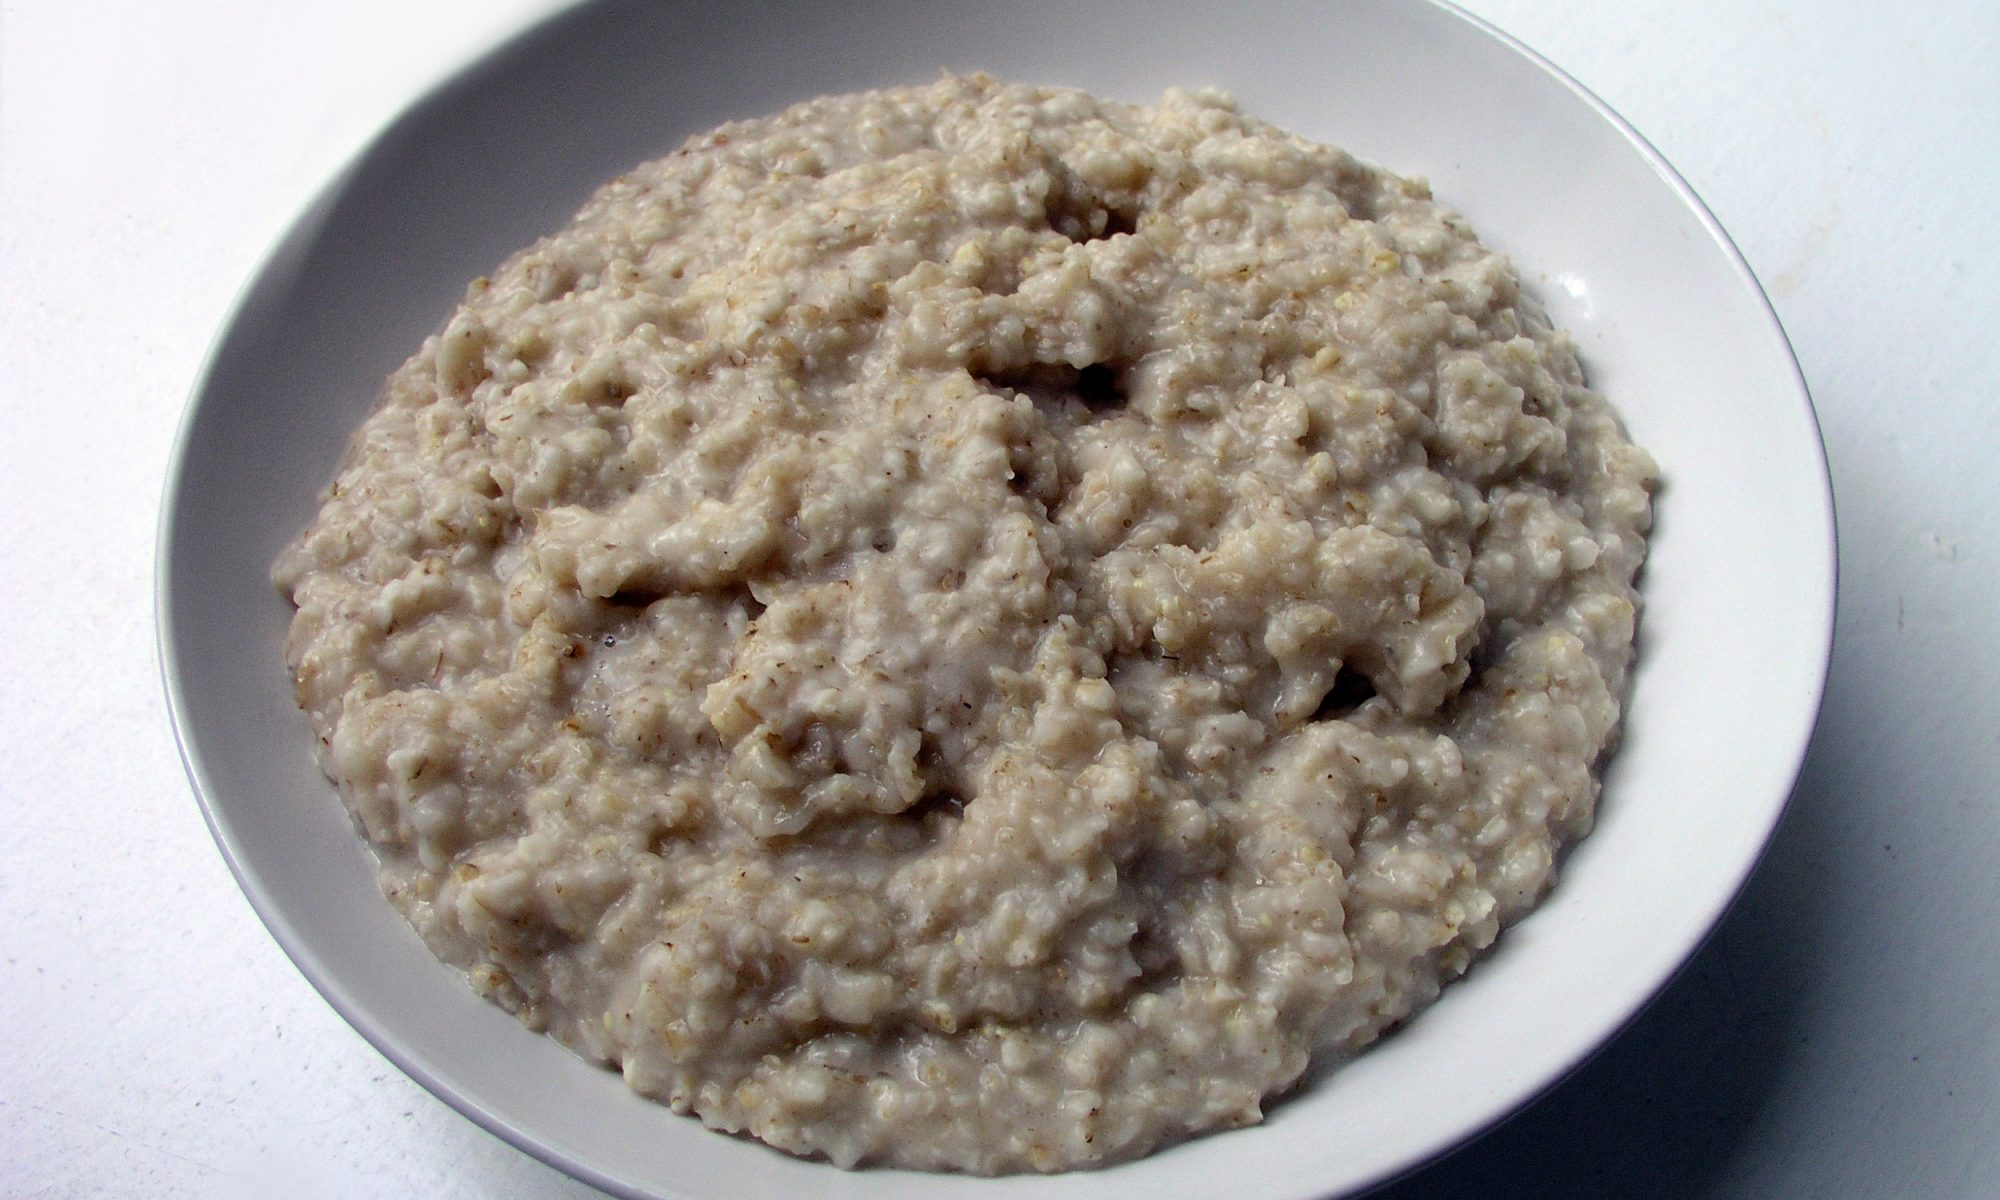 EC: Oatmeal Is for People Who Won't Let Themselves Have Nice Things